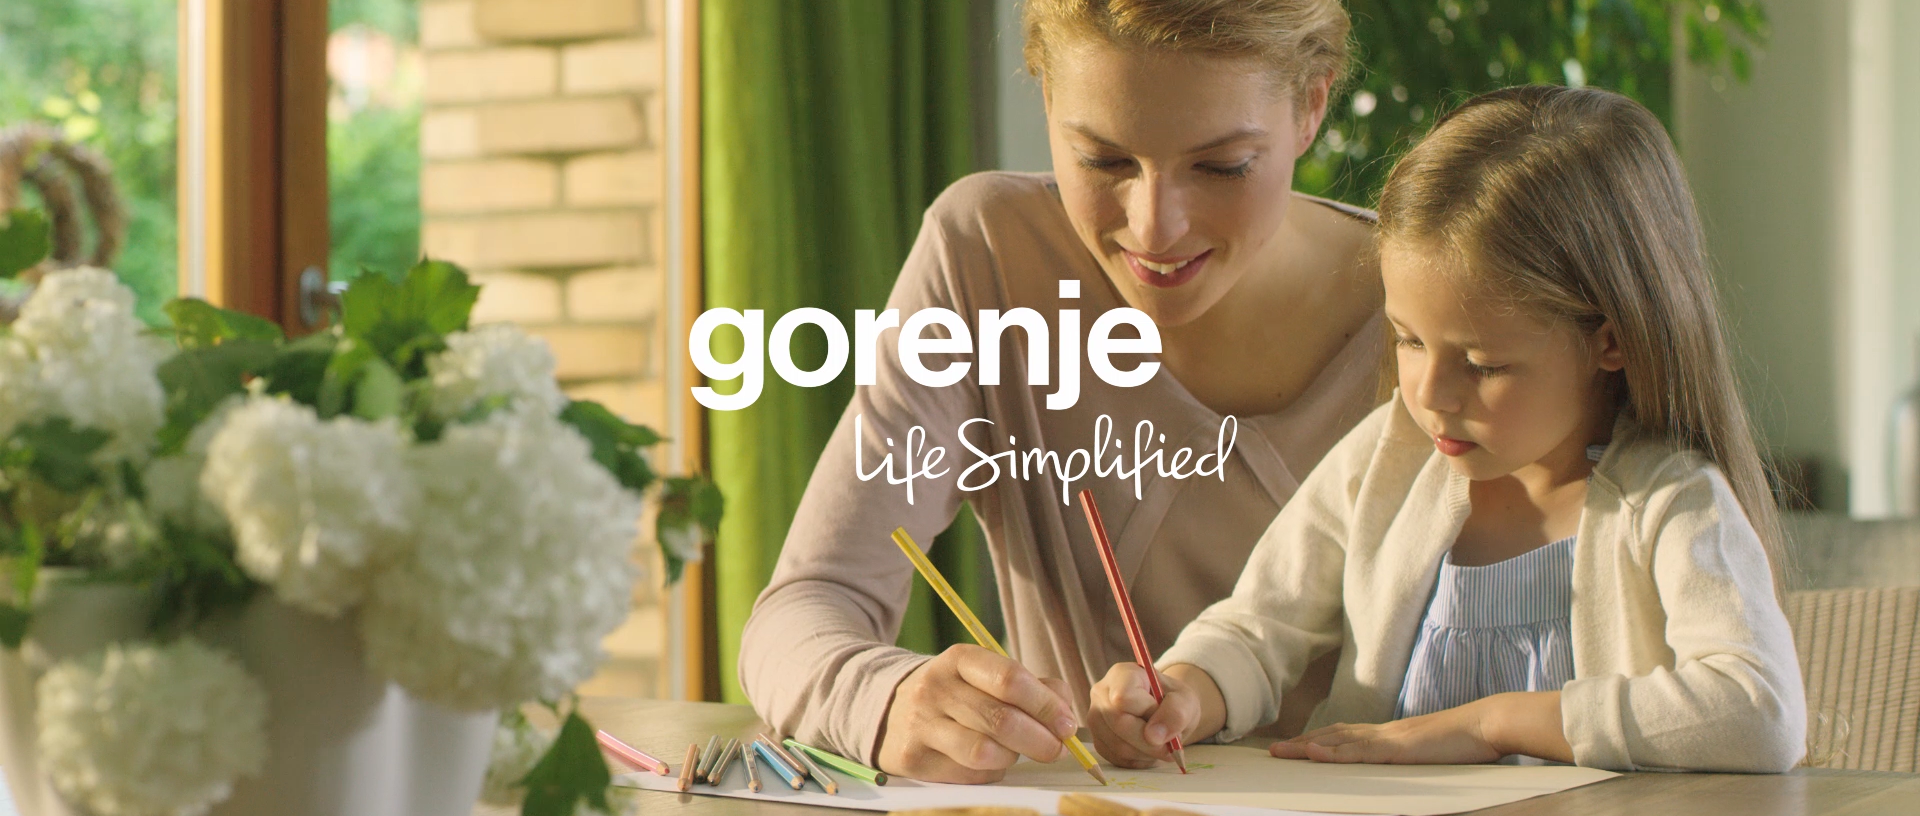 Gorenje - Corporate Presentation